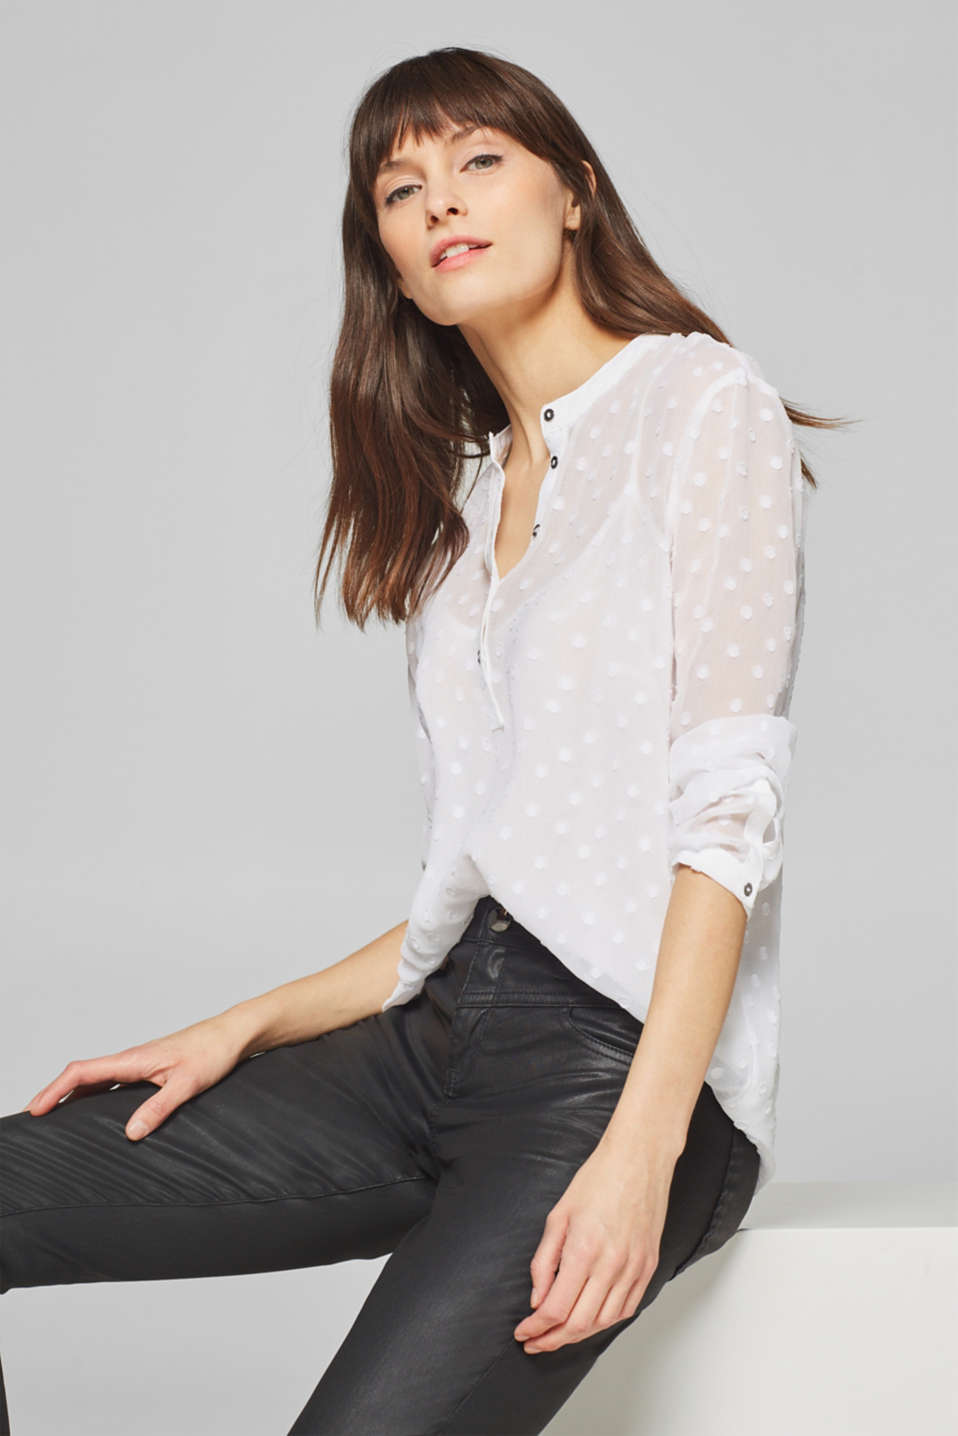 Esprit - Sheer chiffon blouse with woven polka dots